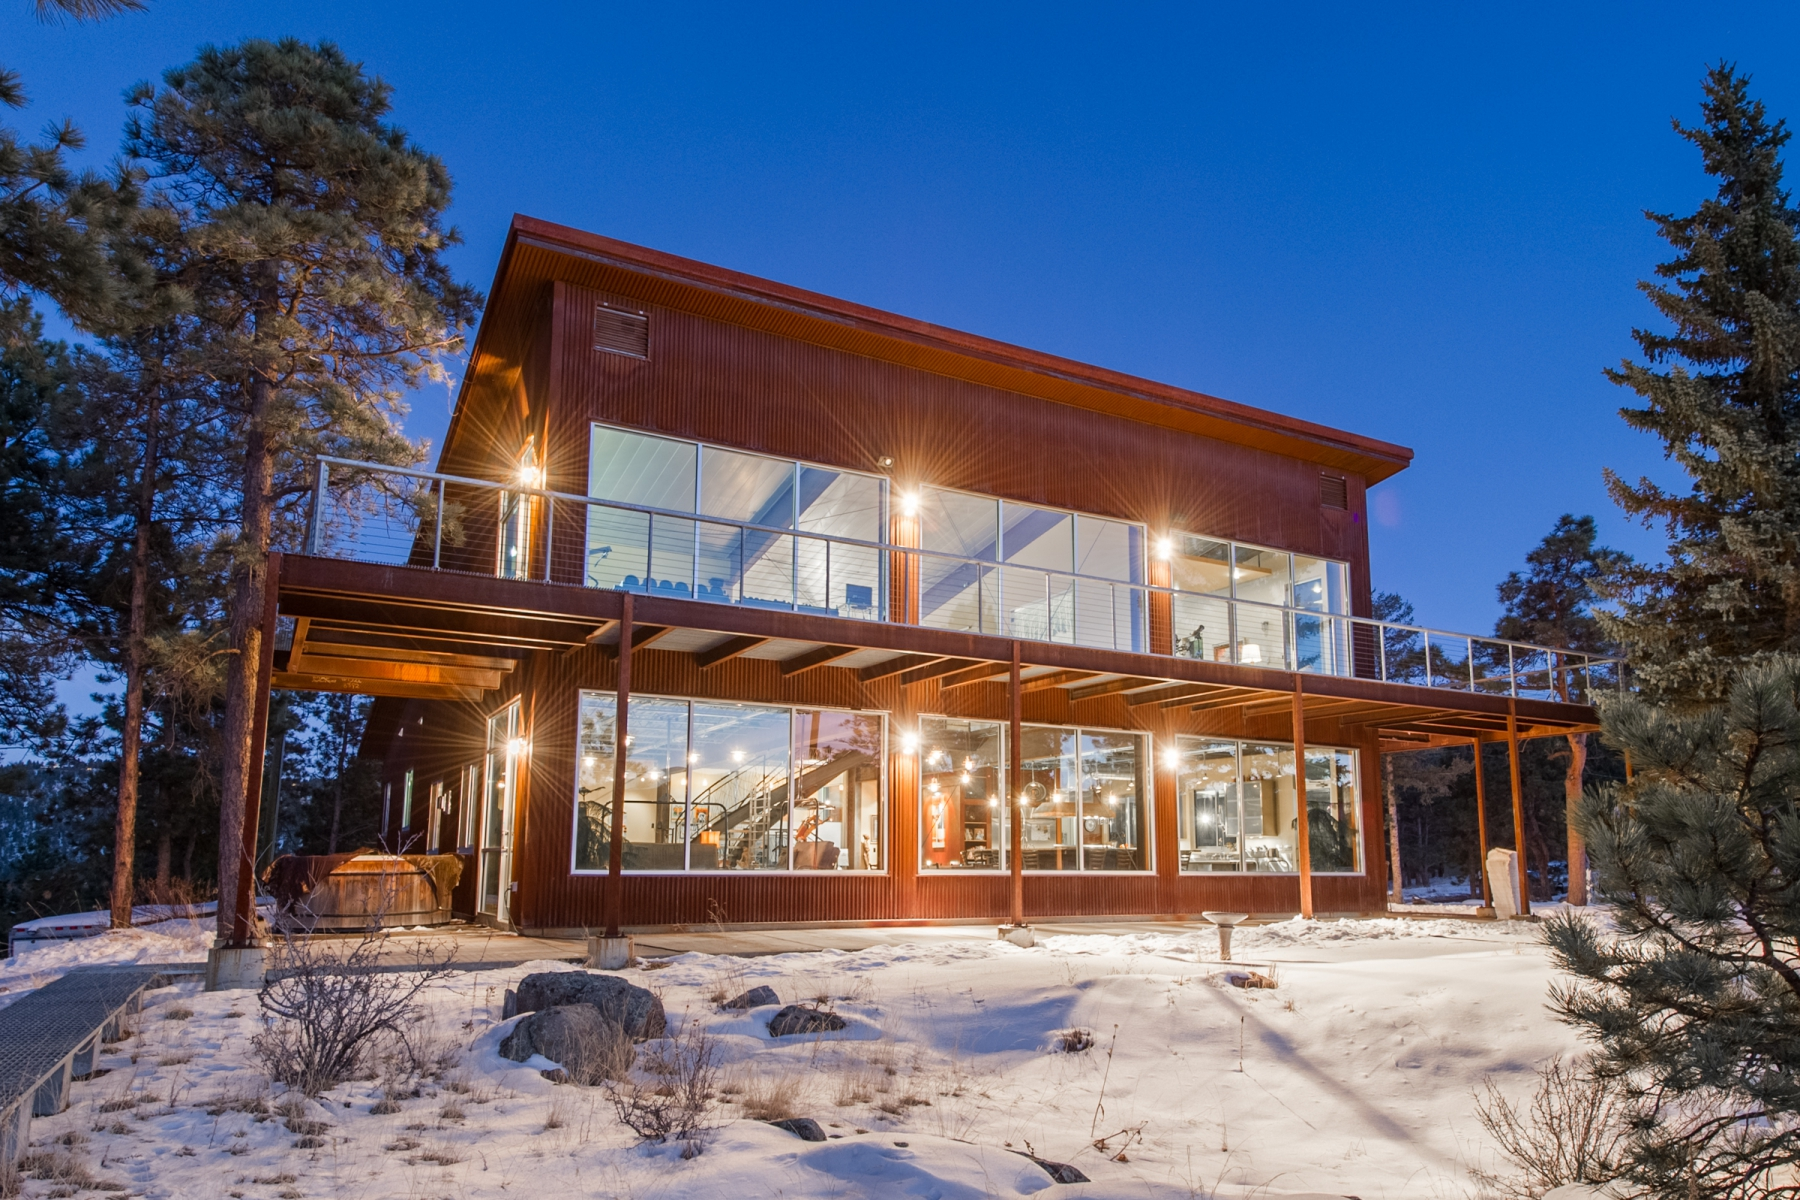 Pictured: 6199 South Skyline Drive, Evergreen. Listed by LIV Sotheby's International Realty for $1,788,000.